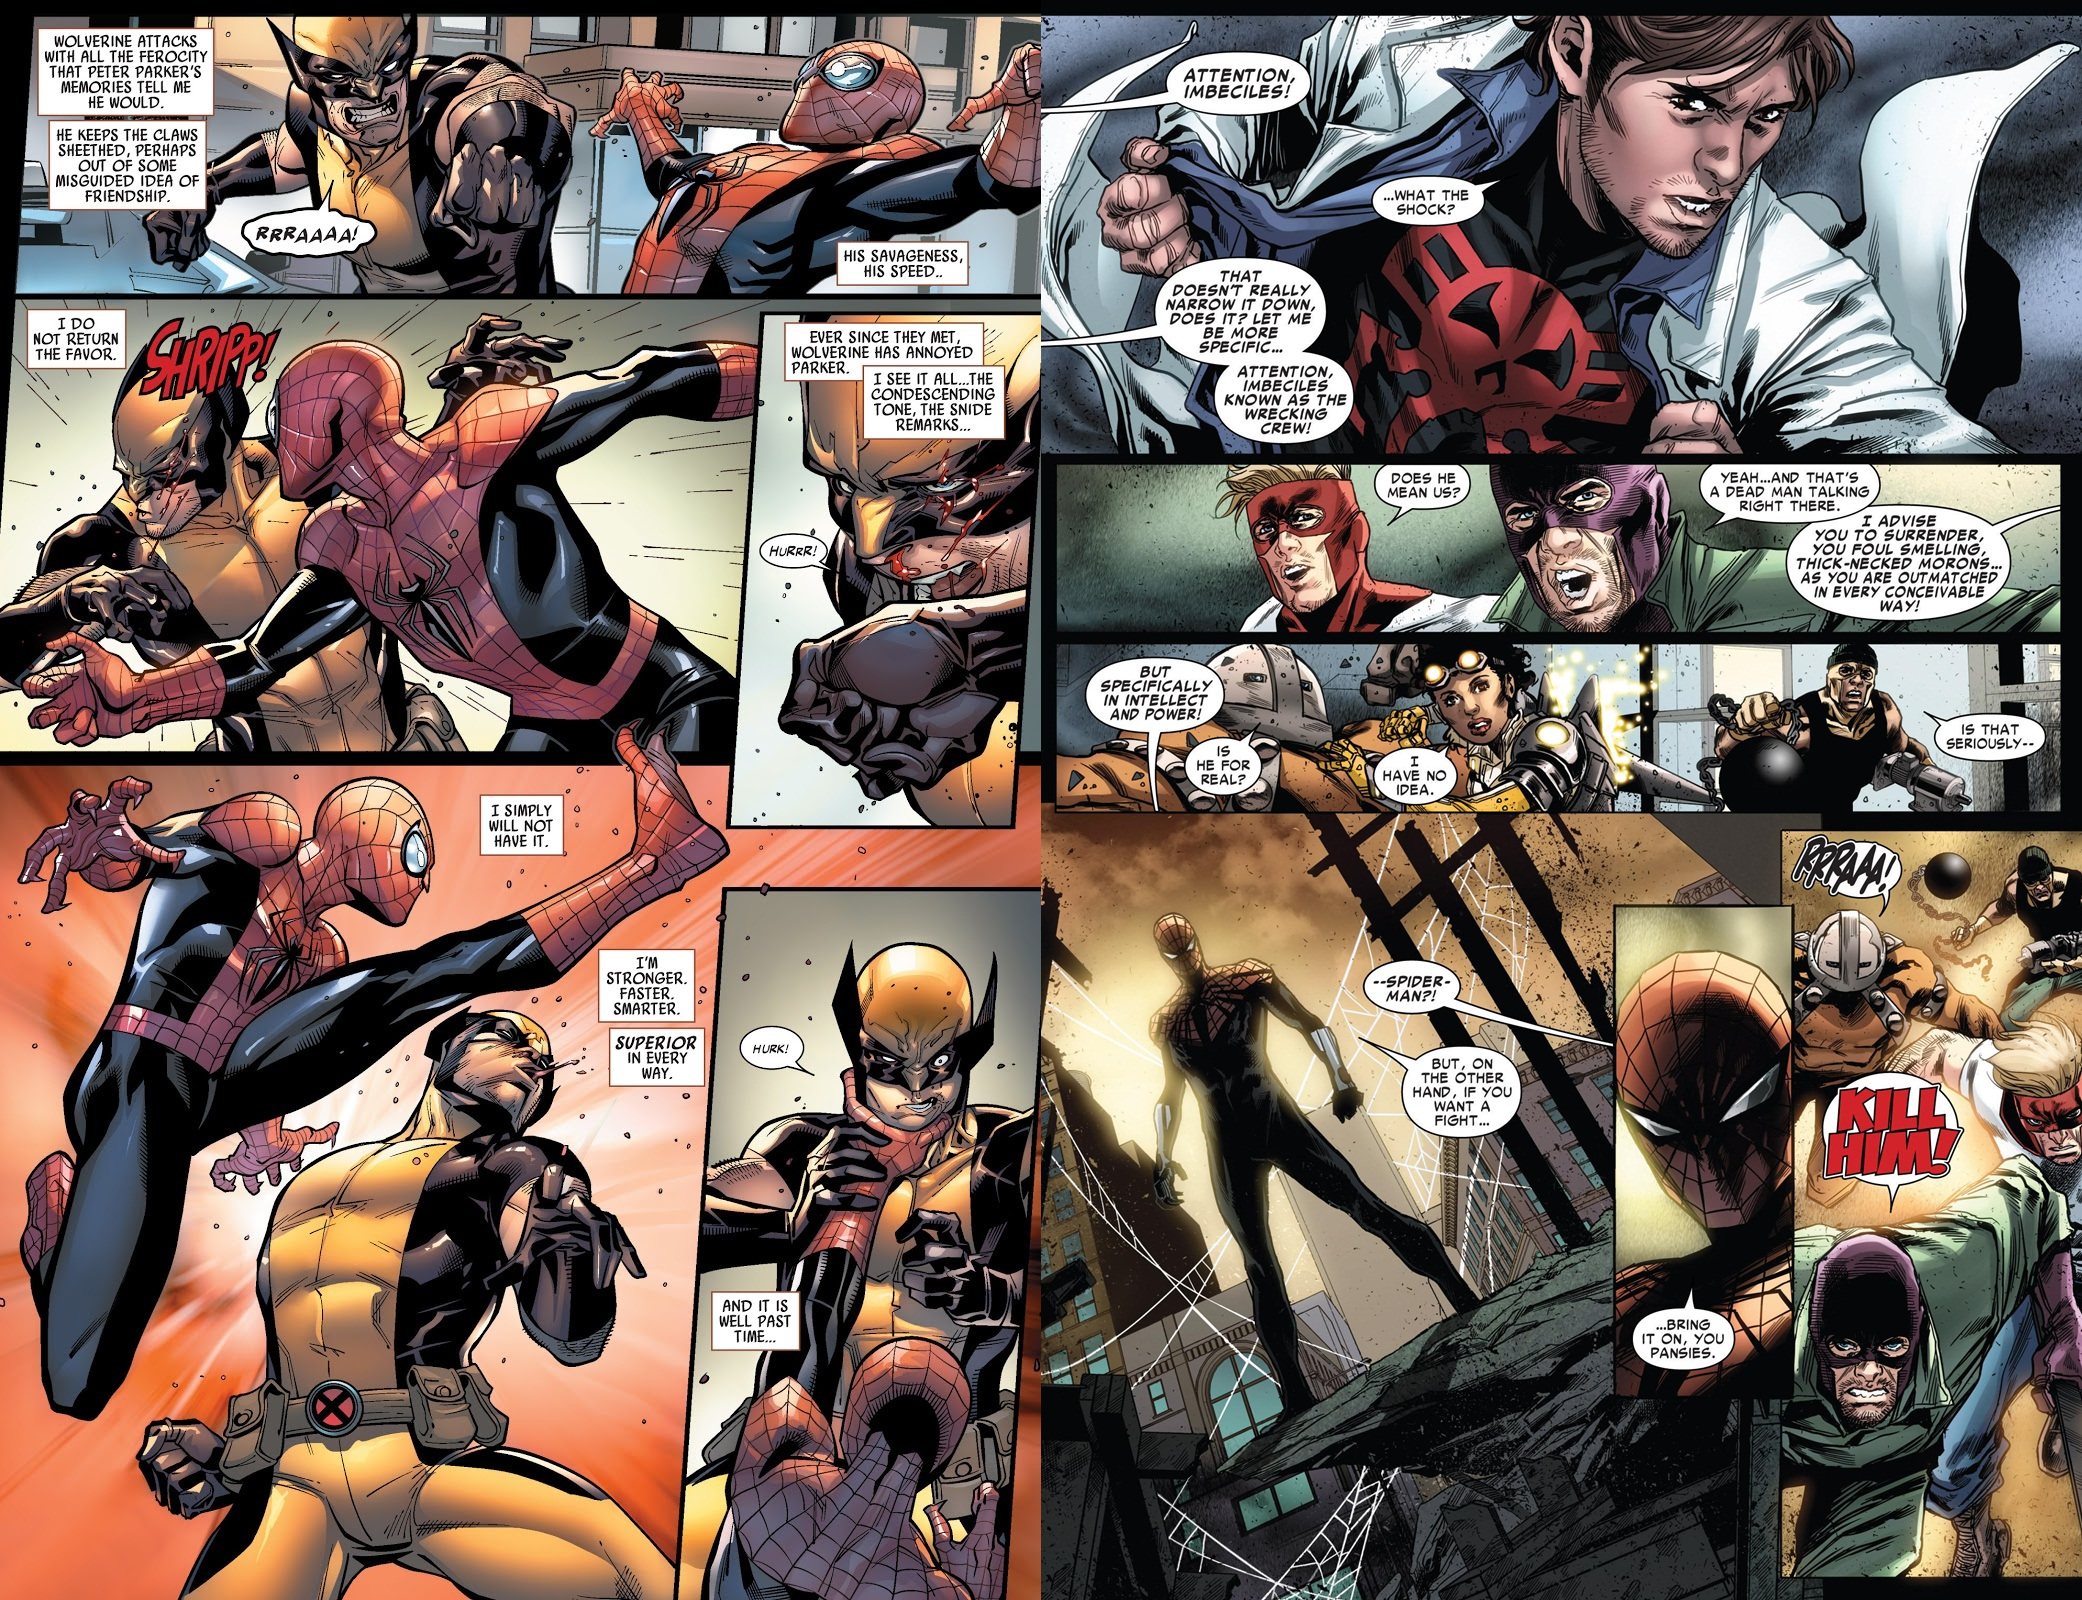 Superior Spider-Man Team-Up Superiority Complex review